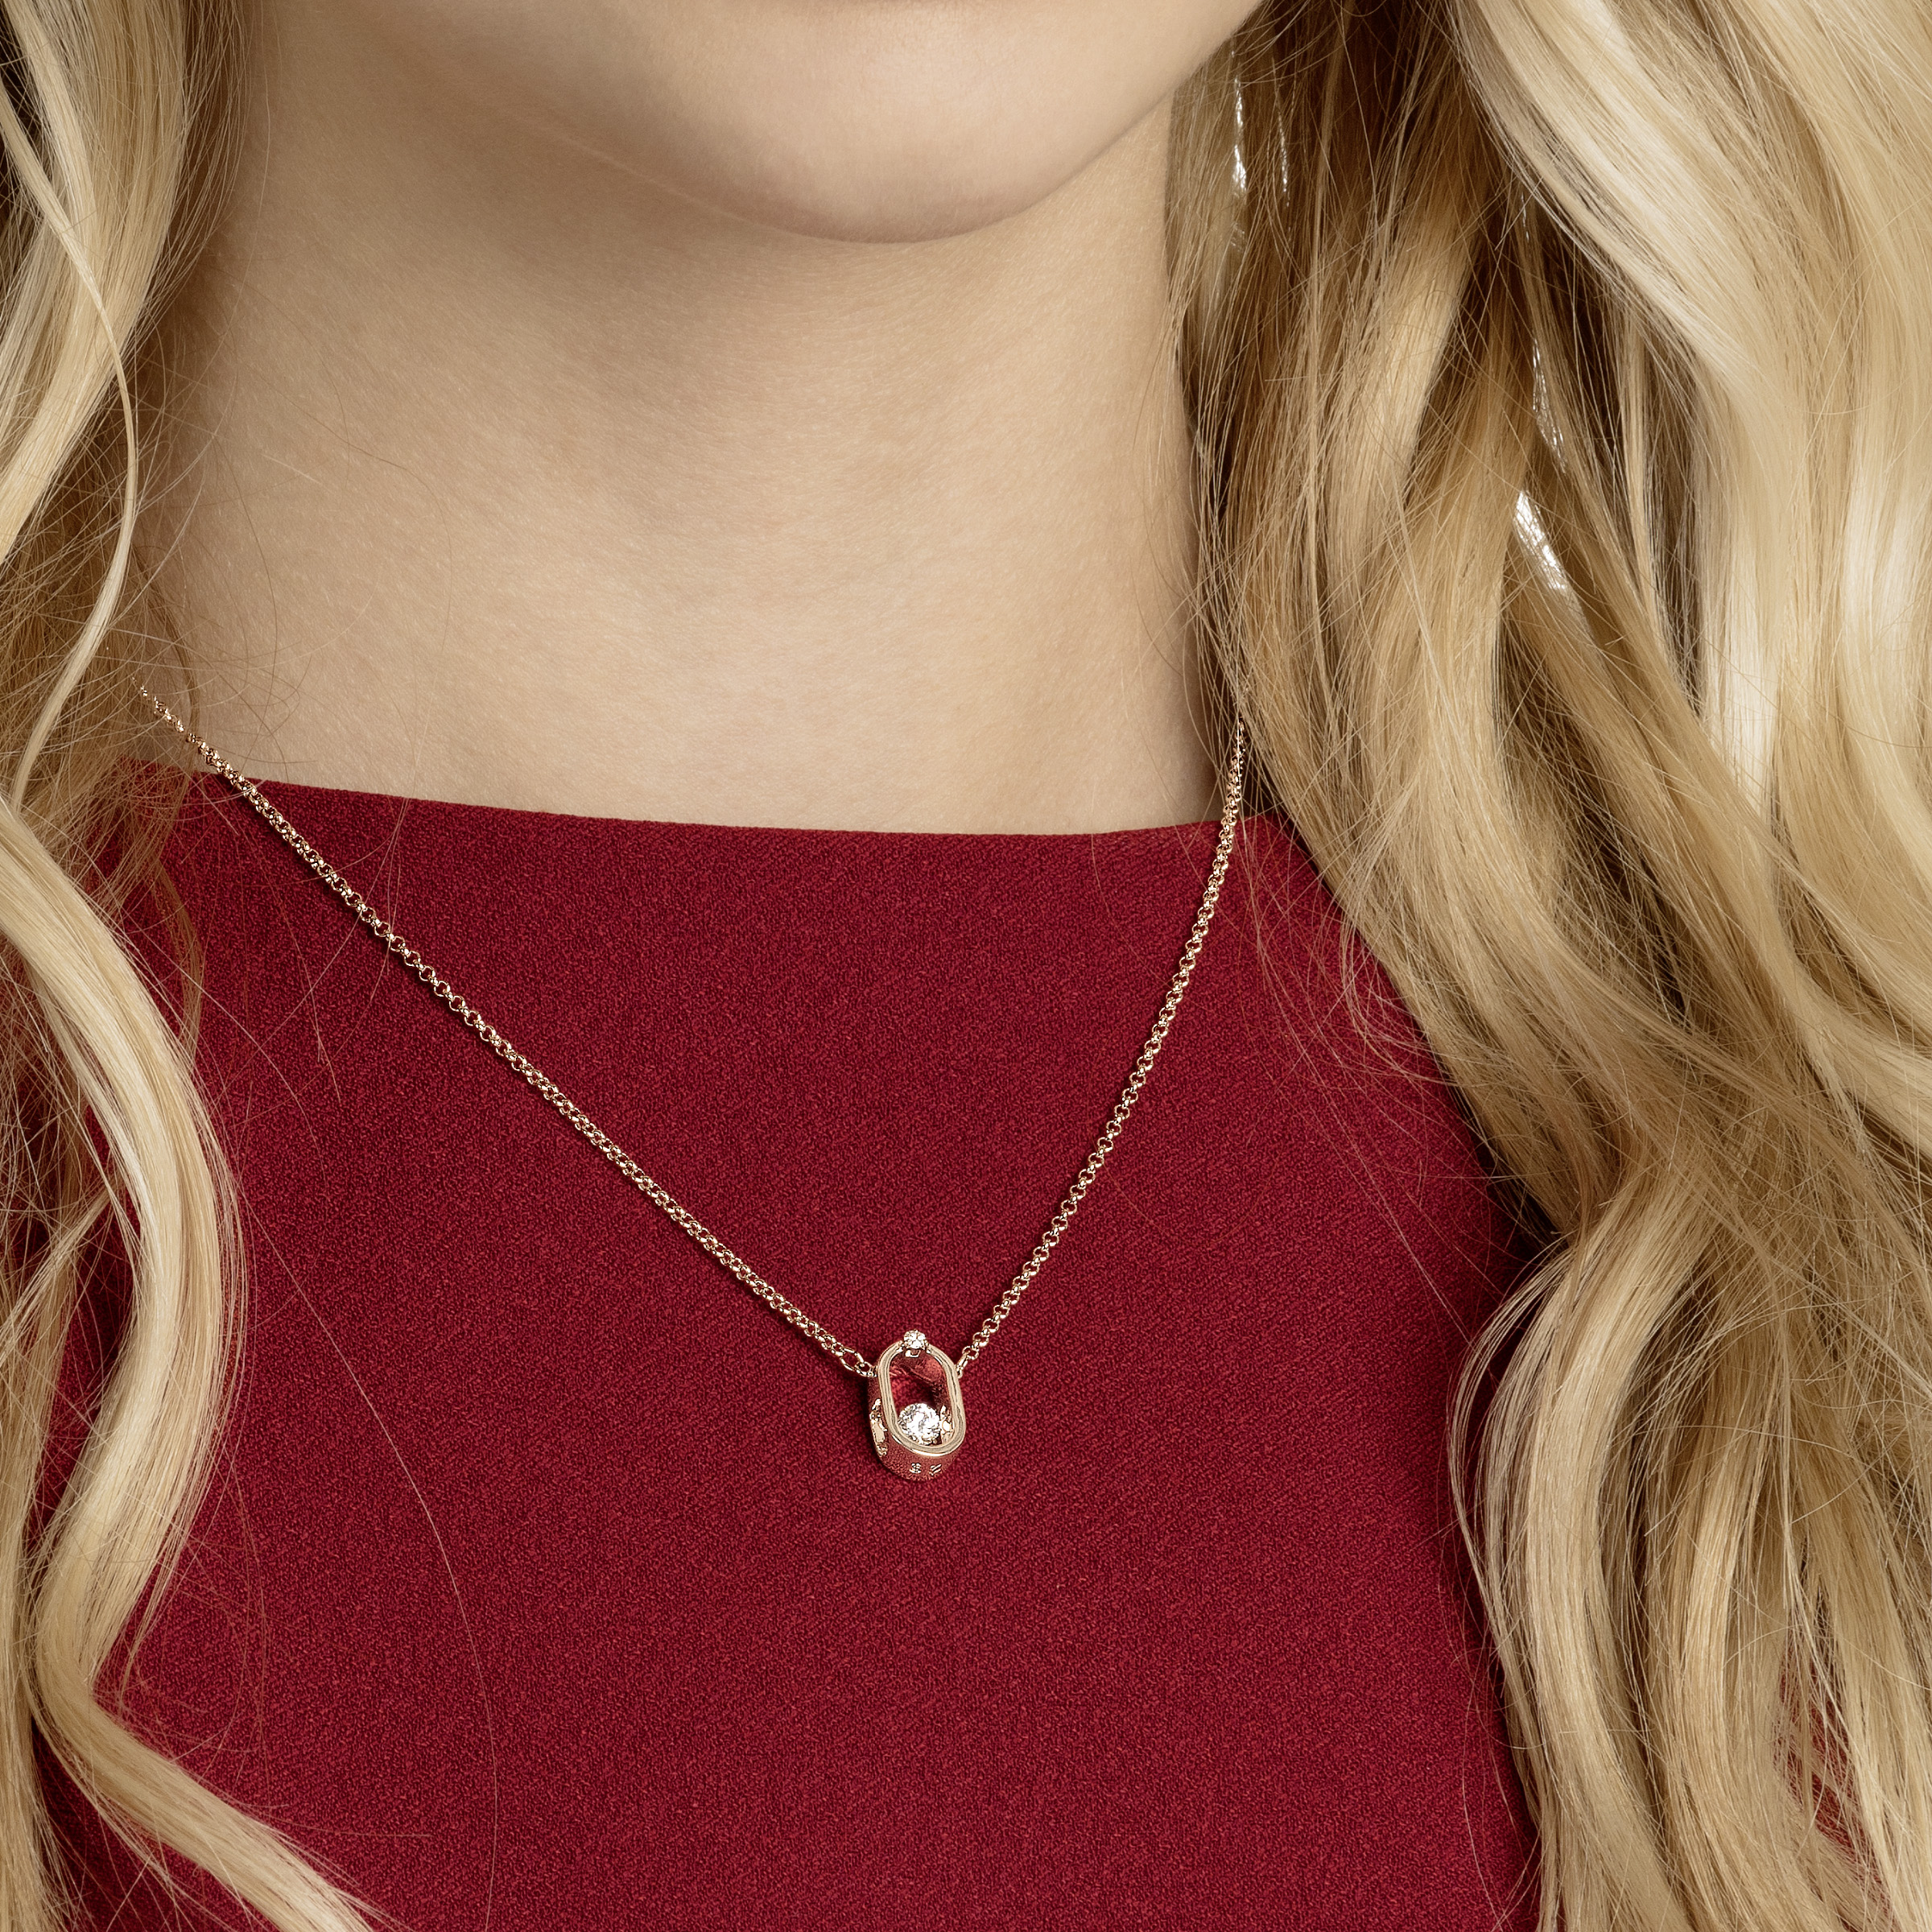 North Necklace, White, Rose gold plating